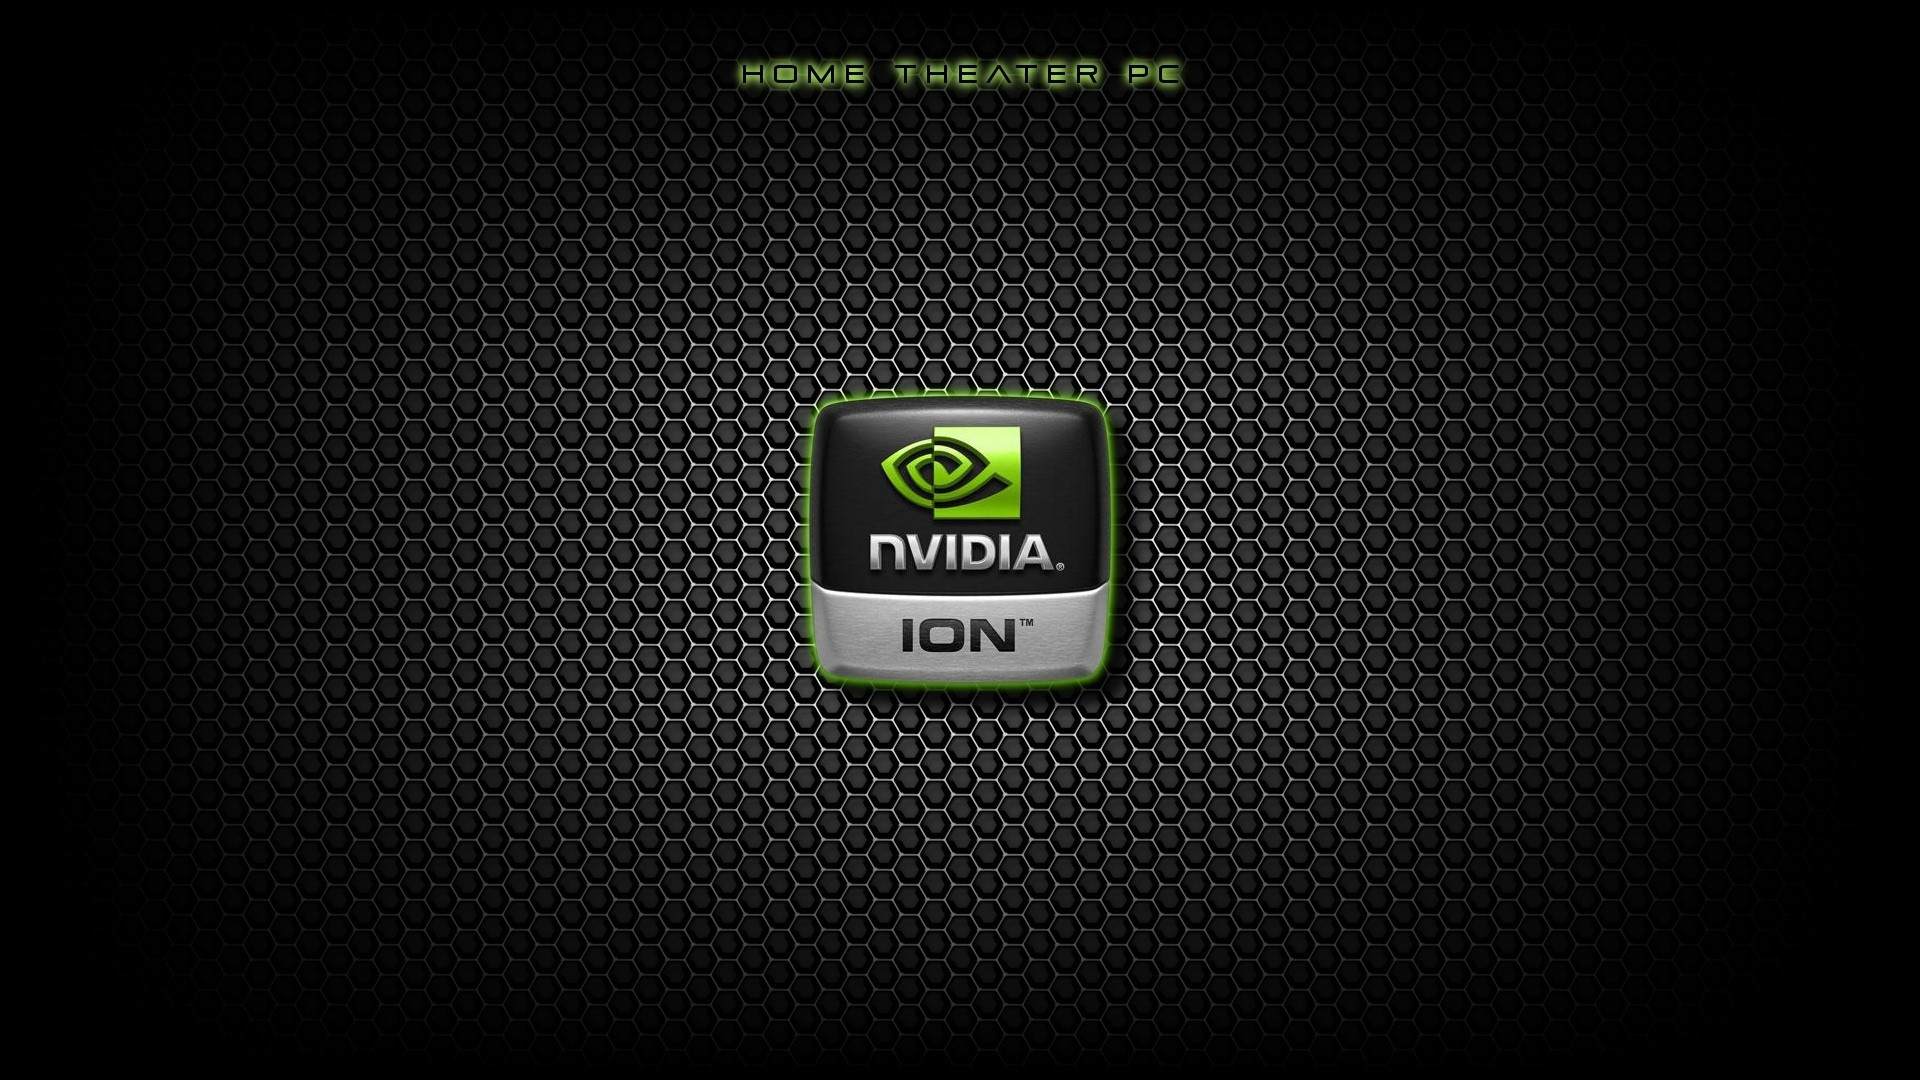 Nvidia Hd Wallpaper Background Image 1920x1080 Id 411176 Wallpaper Abyss